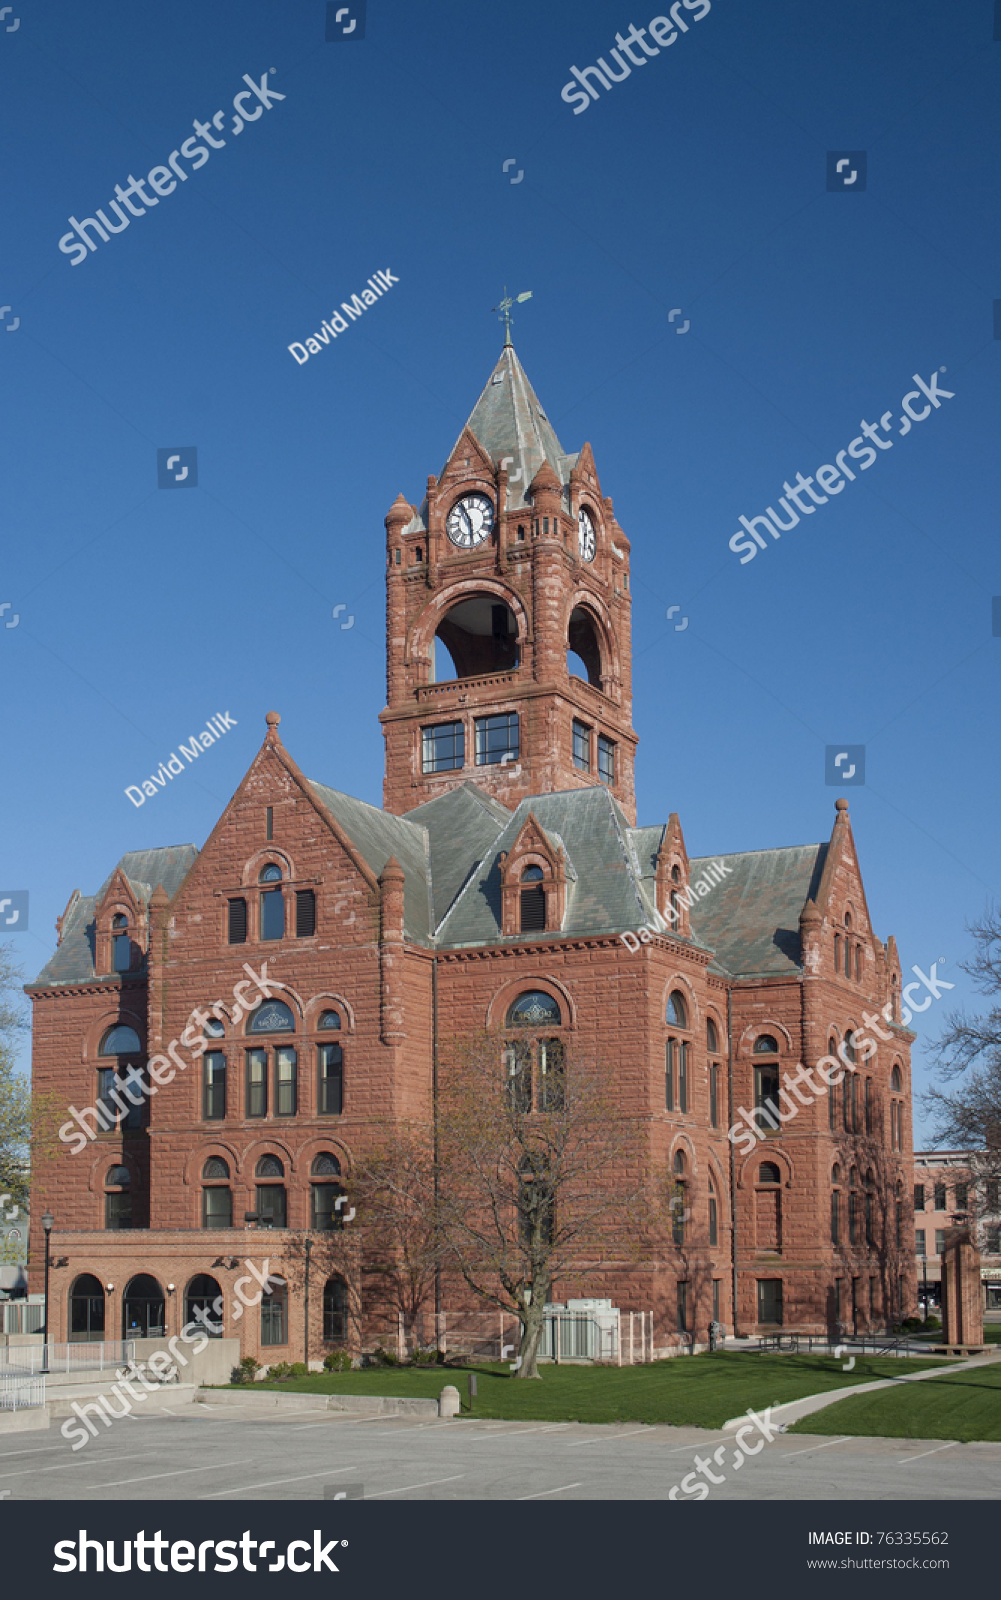 Laporte county courthouse laporte indiana stock photo for Laporte courthouse